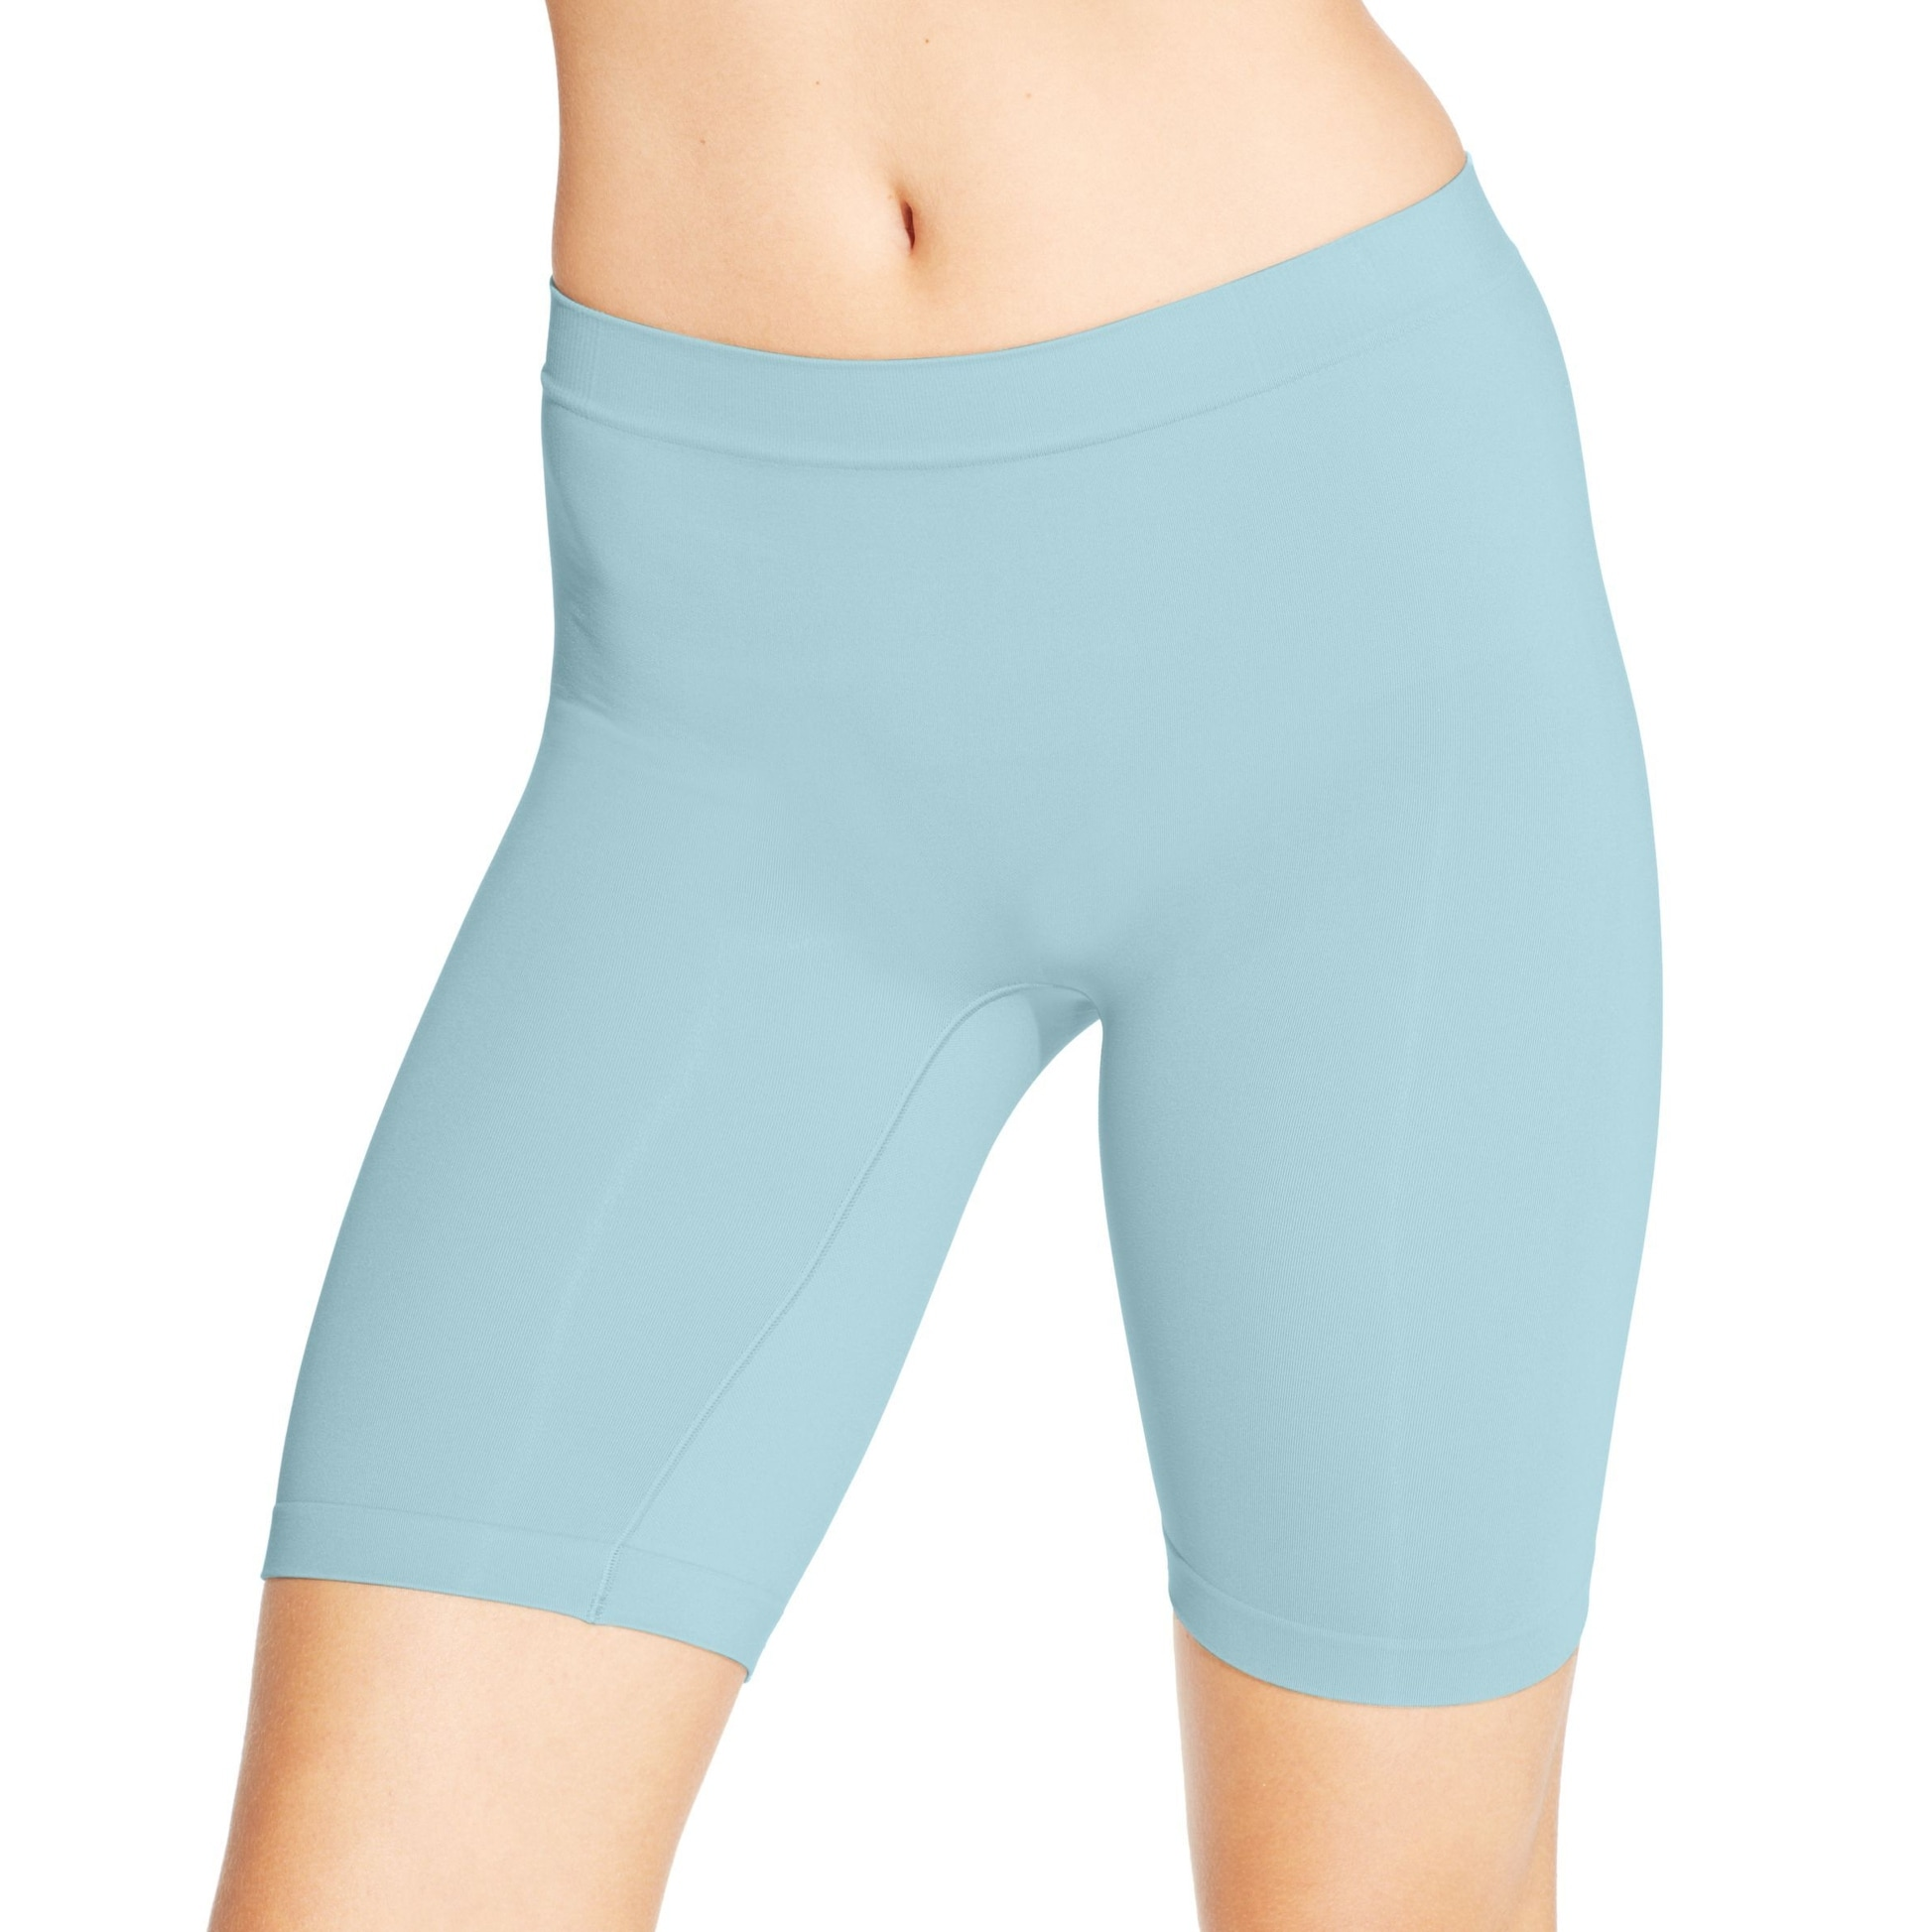 b9b14d182240 Shop Jockey Women's Skimmies Slip Shorts 2109 Mint Size Small - Green -  Free Shipping On Orders Over $45 - Overstock - 25436099